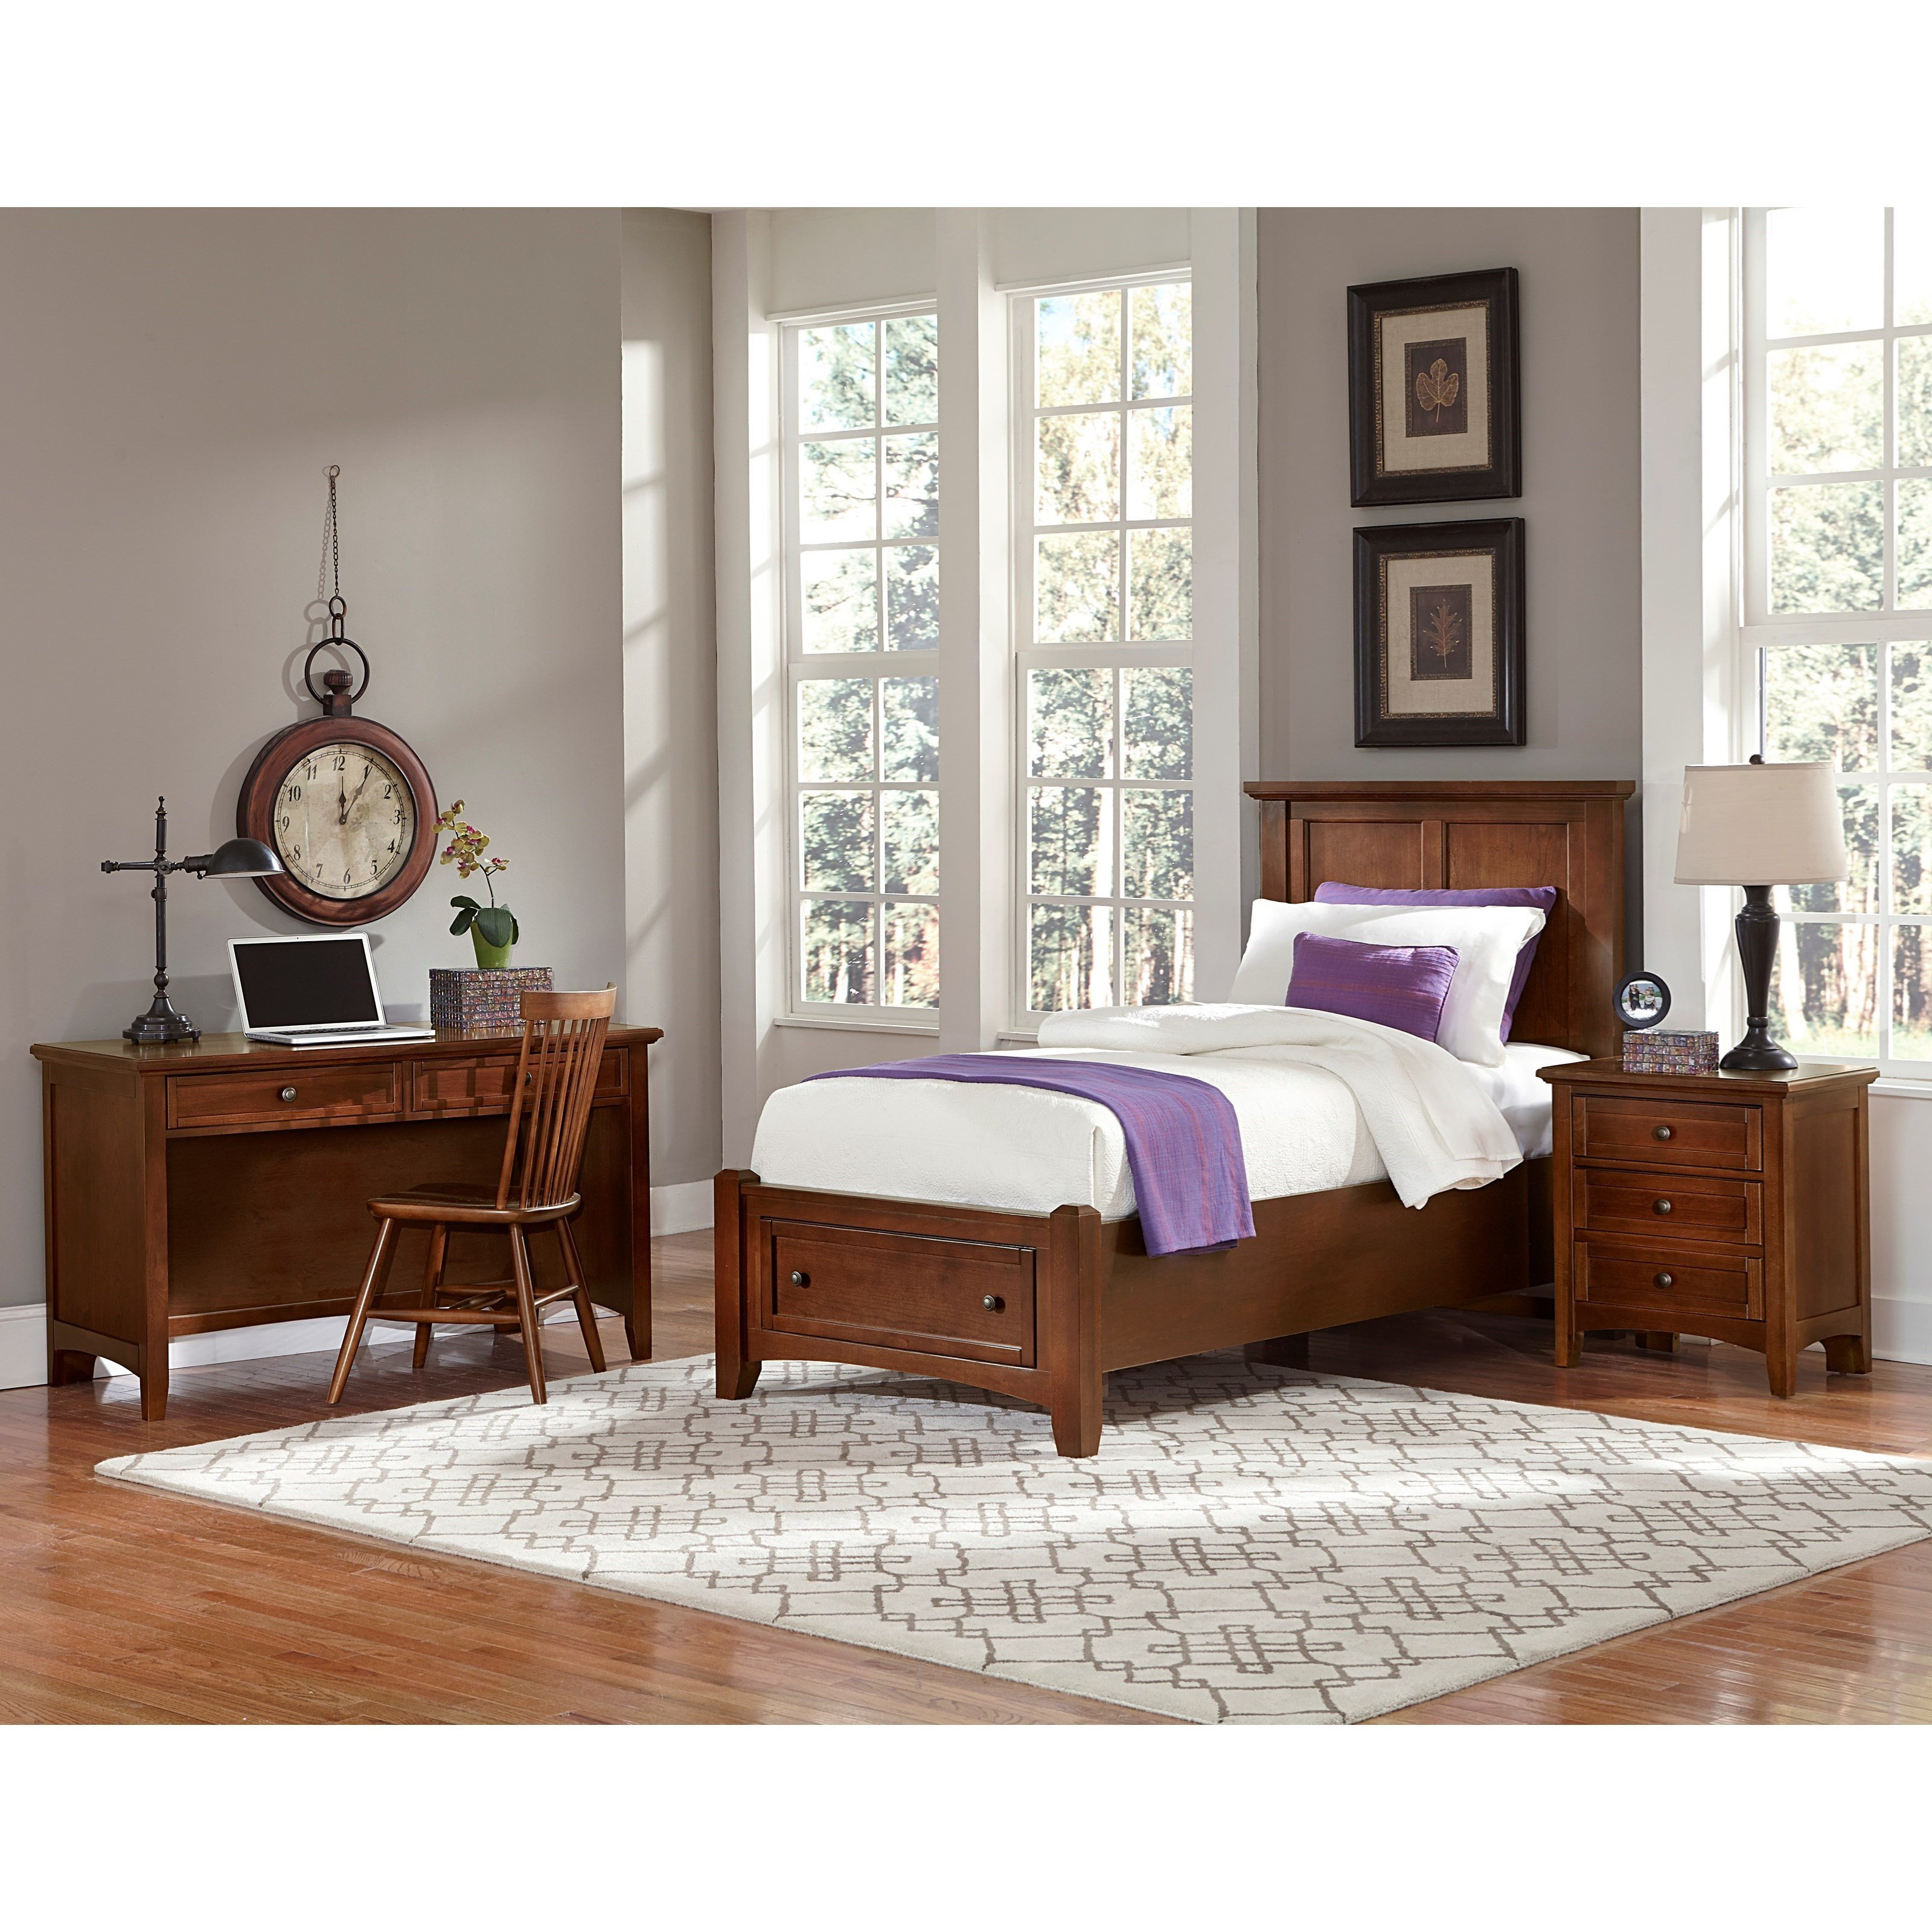 Vaughan Bassett Bedroom Set Best Of Bonanza Twin Bedroom Group